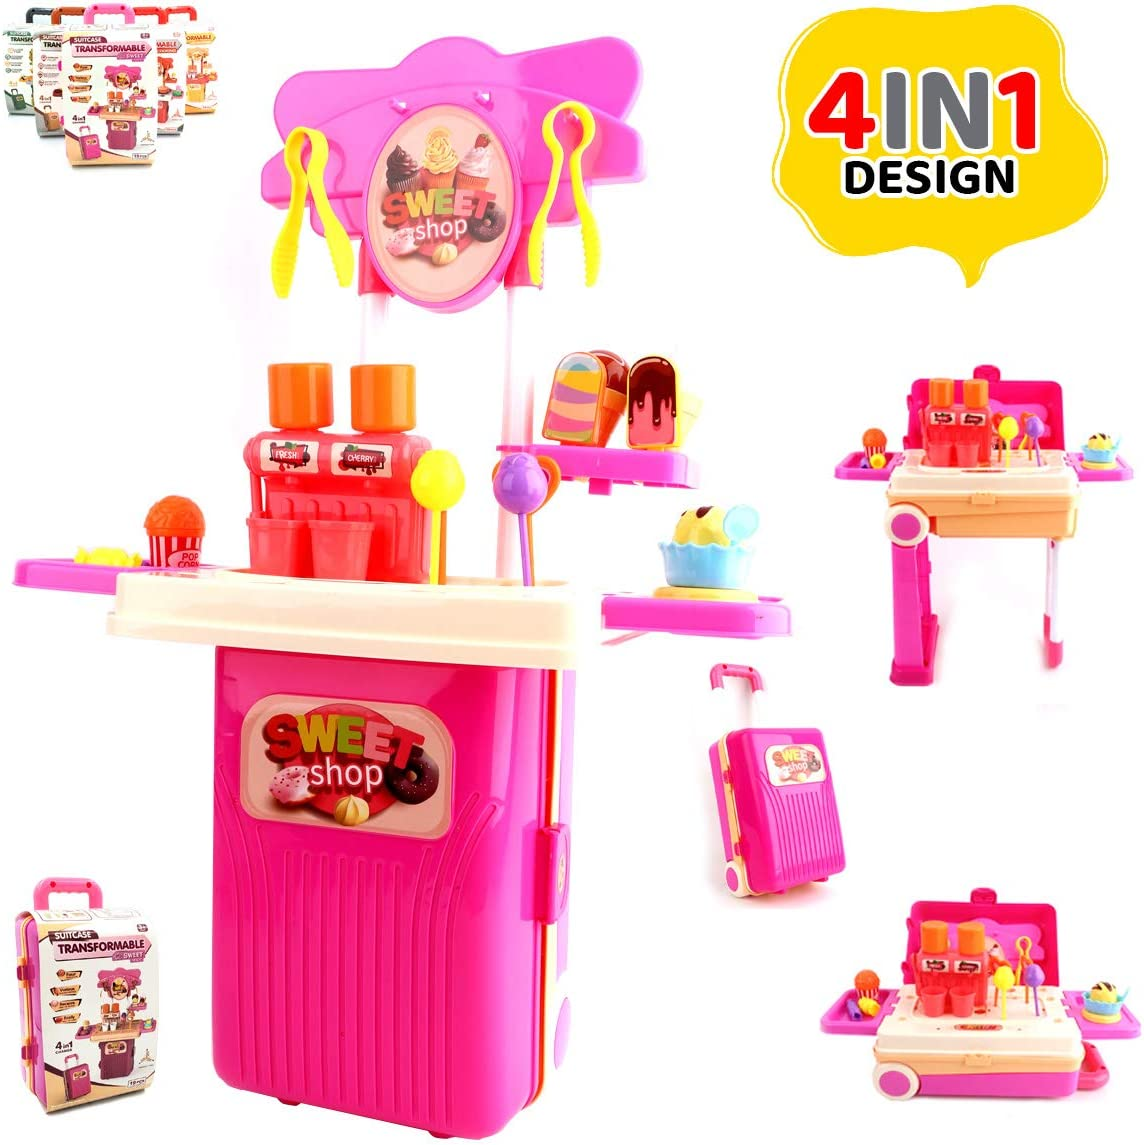 coolitoys 4-in-1 Travel Luggage Turn into Play Sweet Candy Factory Set, Kids Playset Suitcase Toys with 19+Play Food for Toddlers, Girls and Boys, Pretend Play, 21